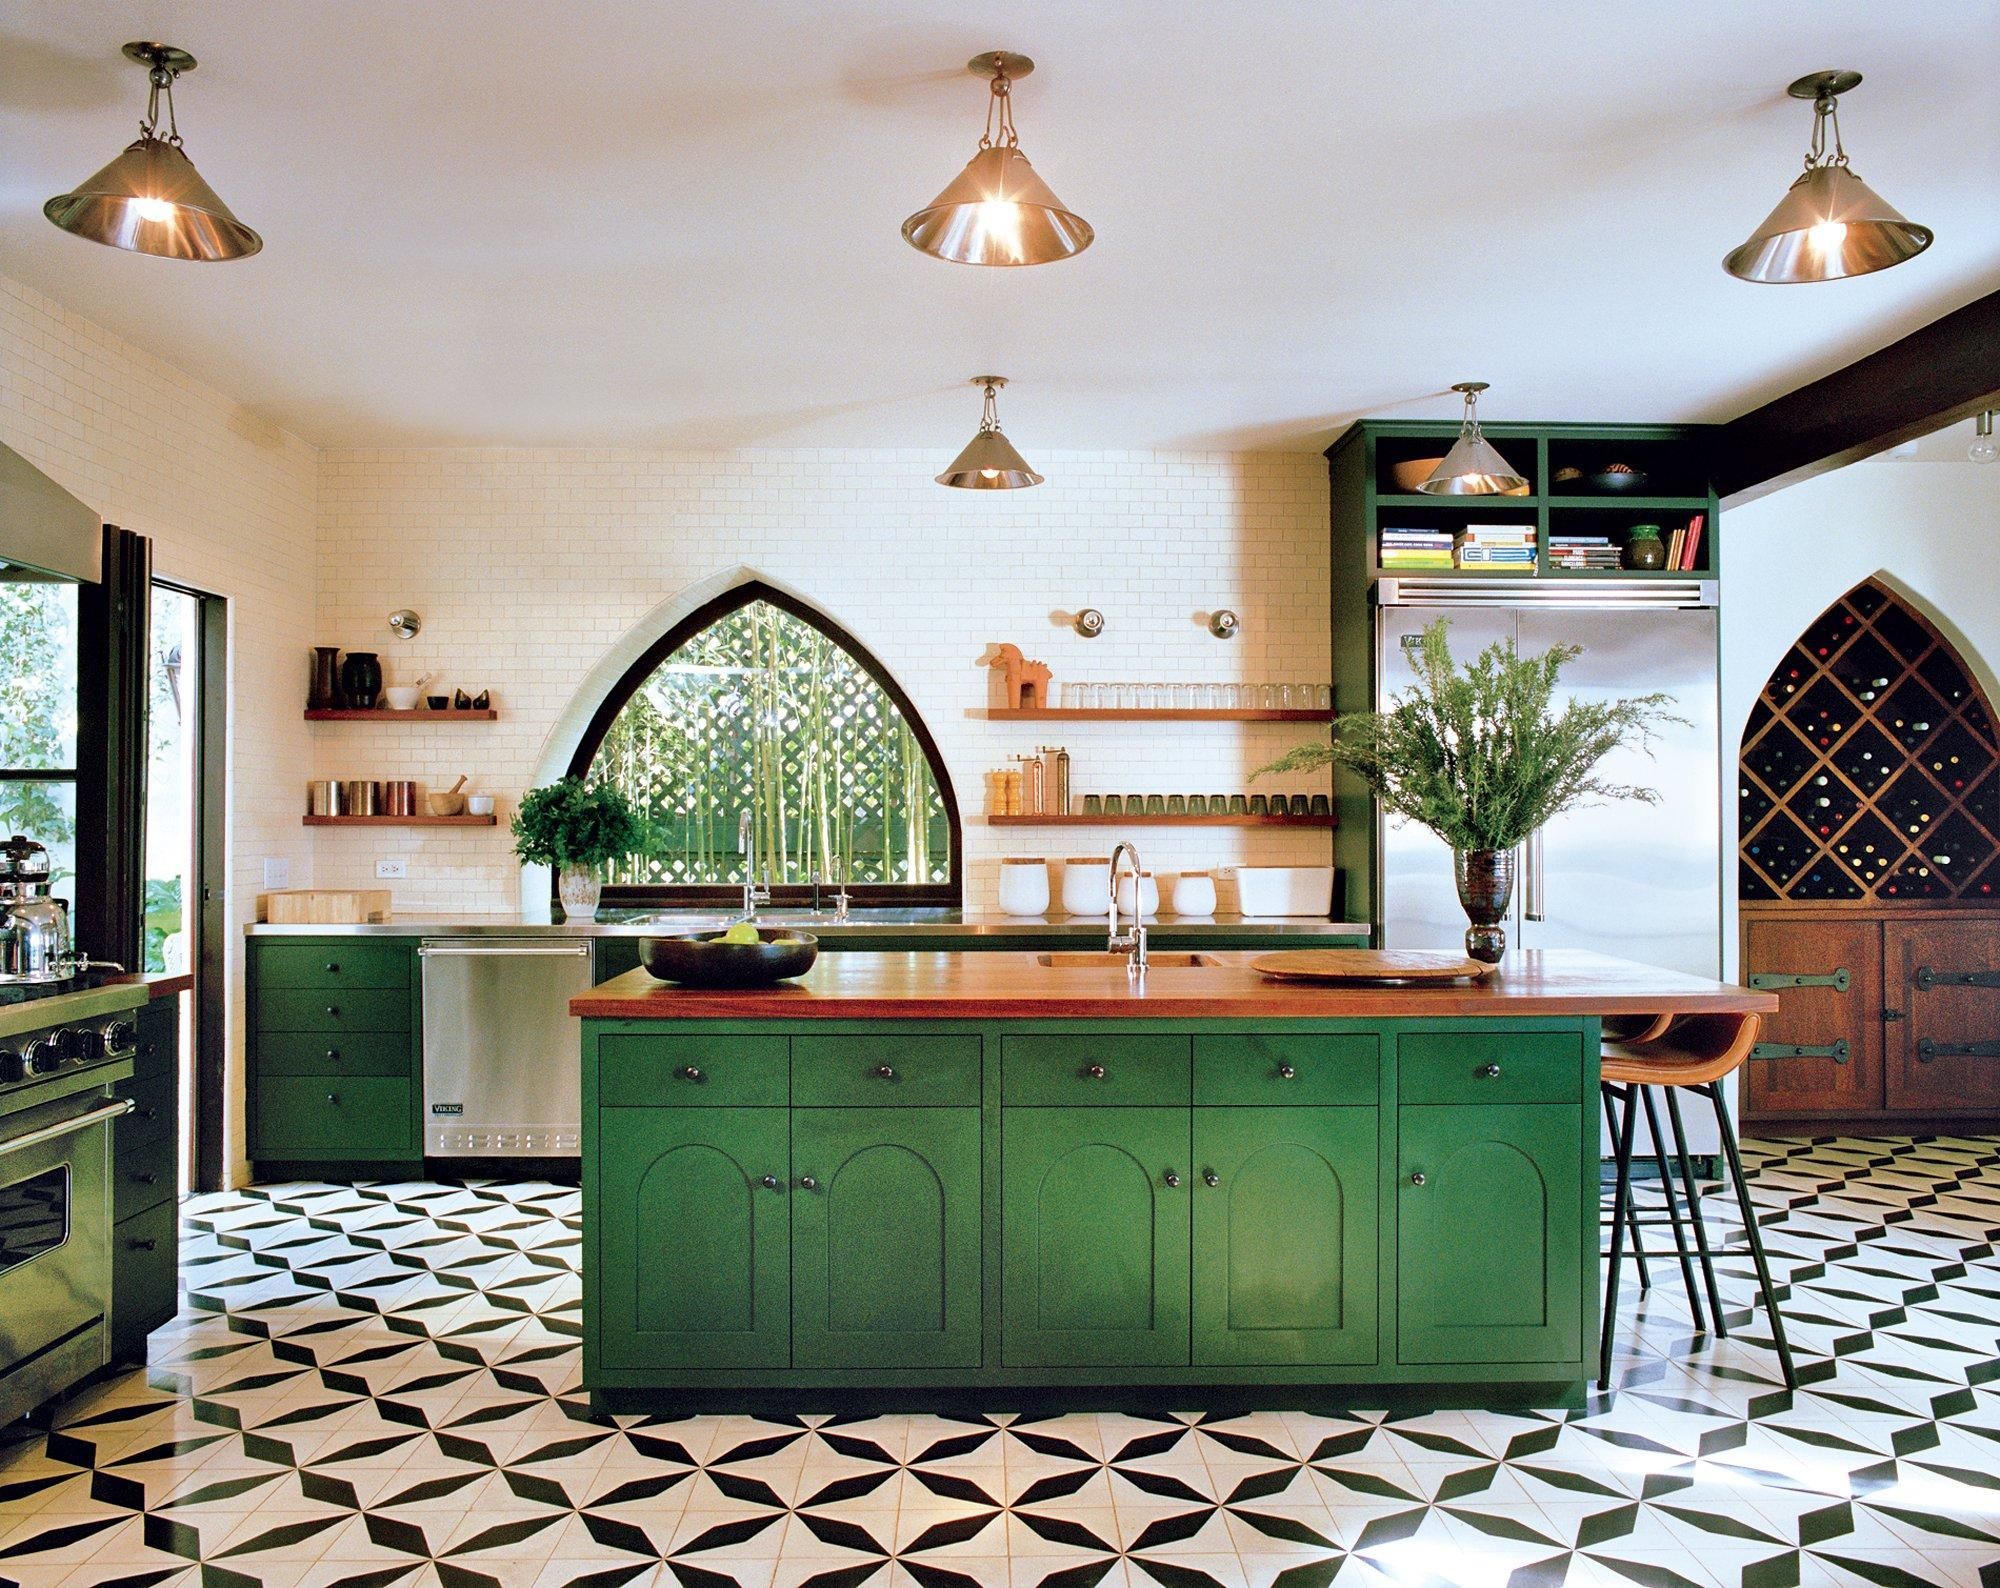 best kitchens photographed in green kitchen decor green kitchen cabinets interior design kitchen on kitchen ideas emerald green id=82288